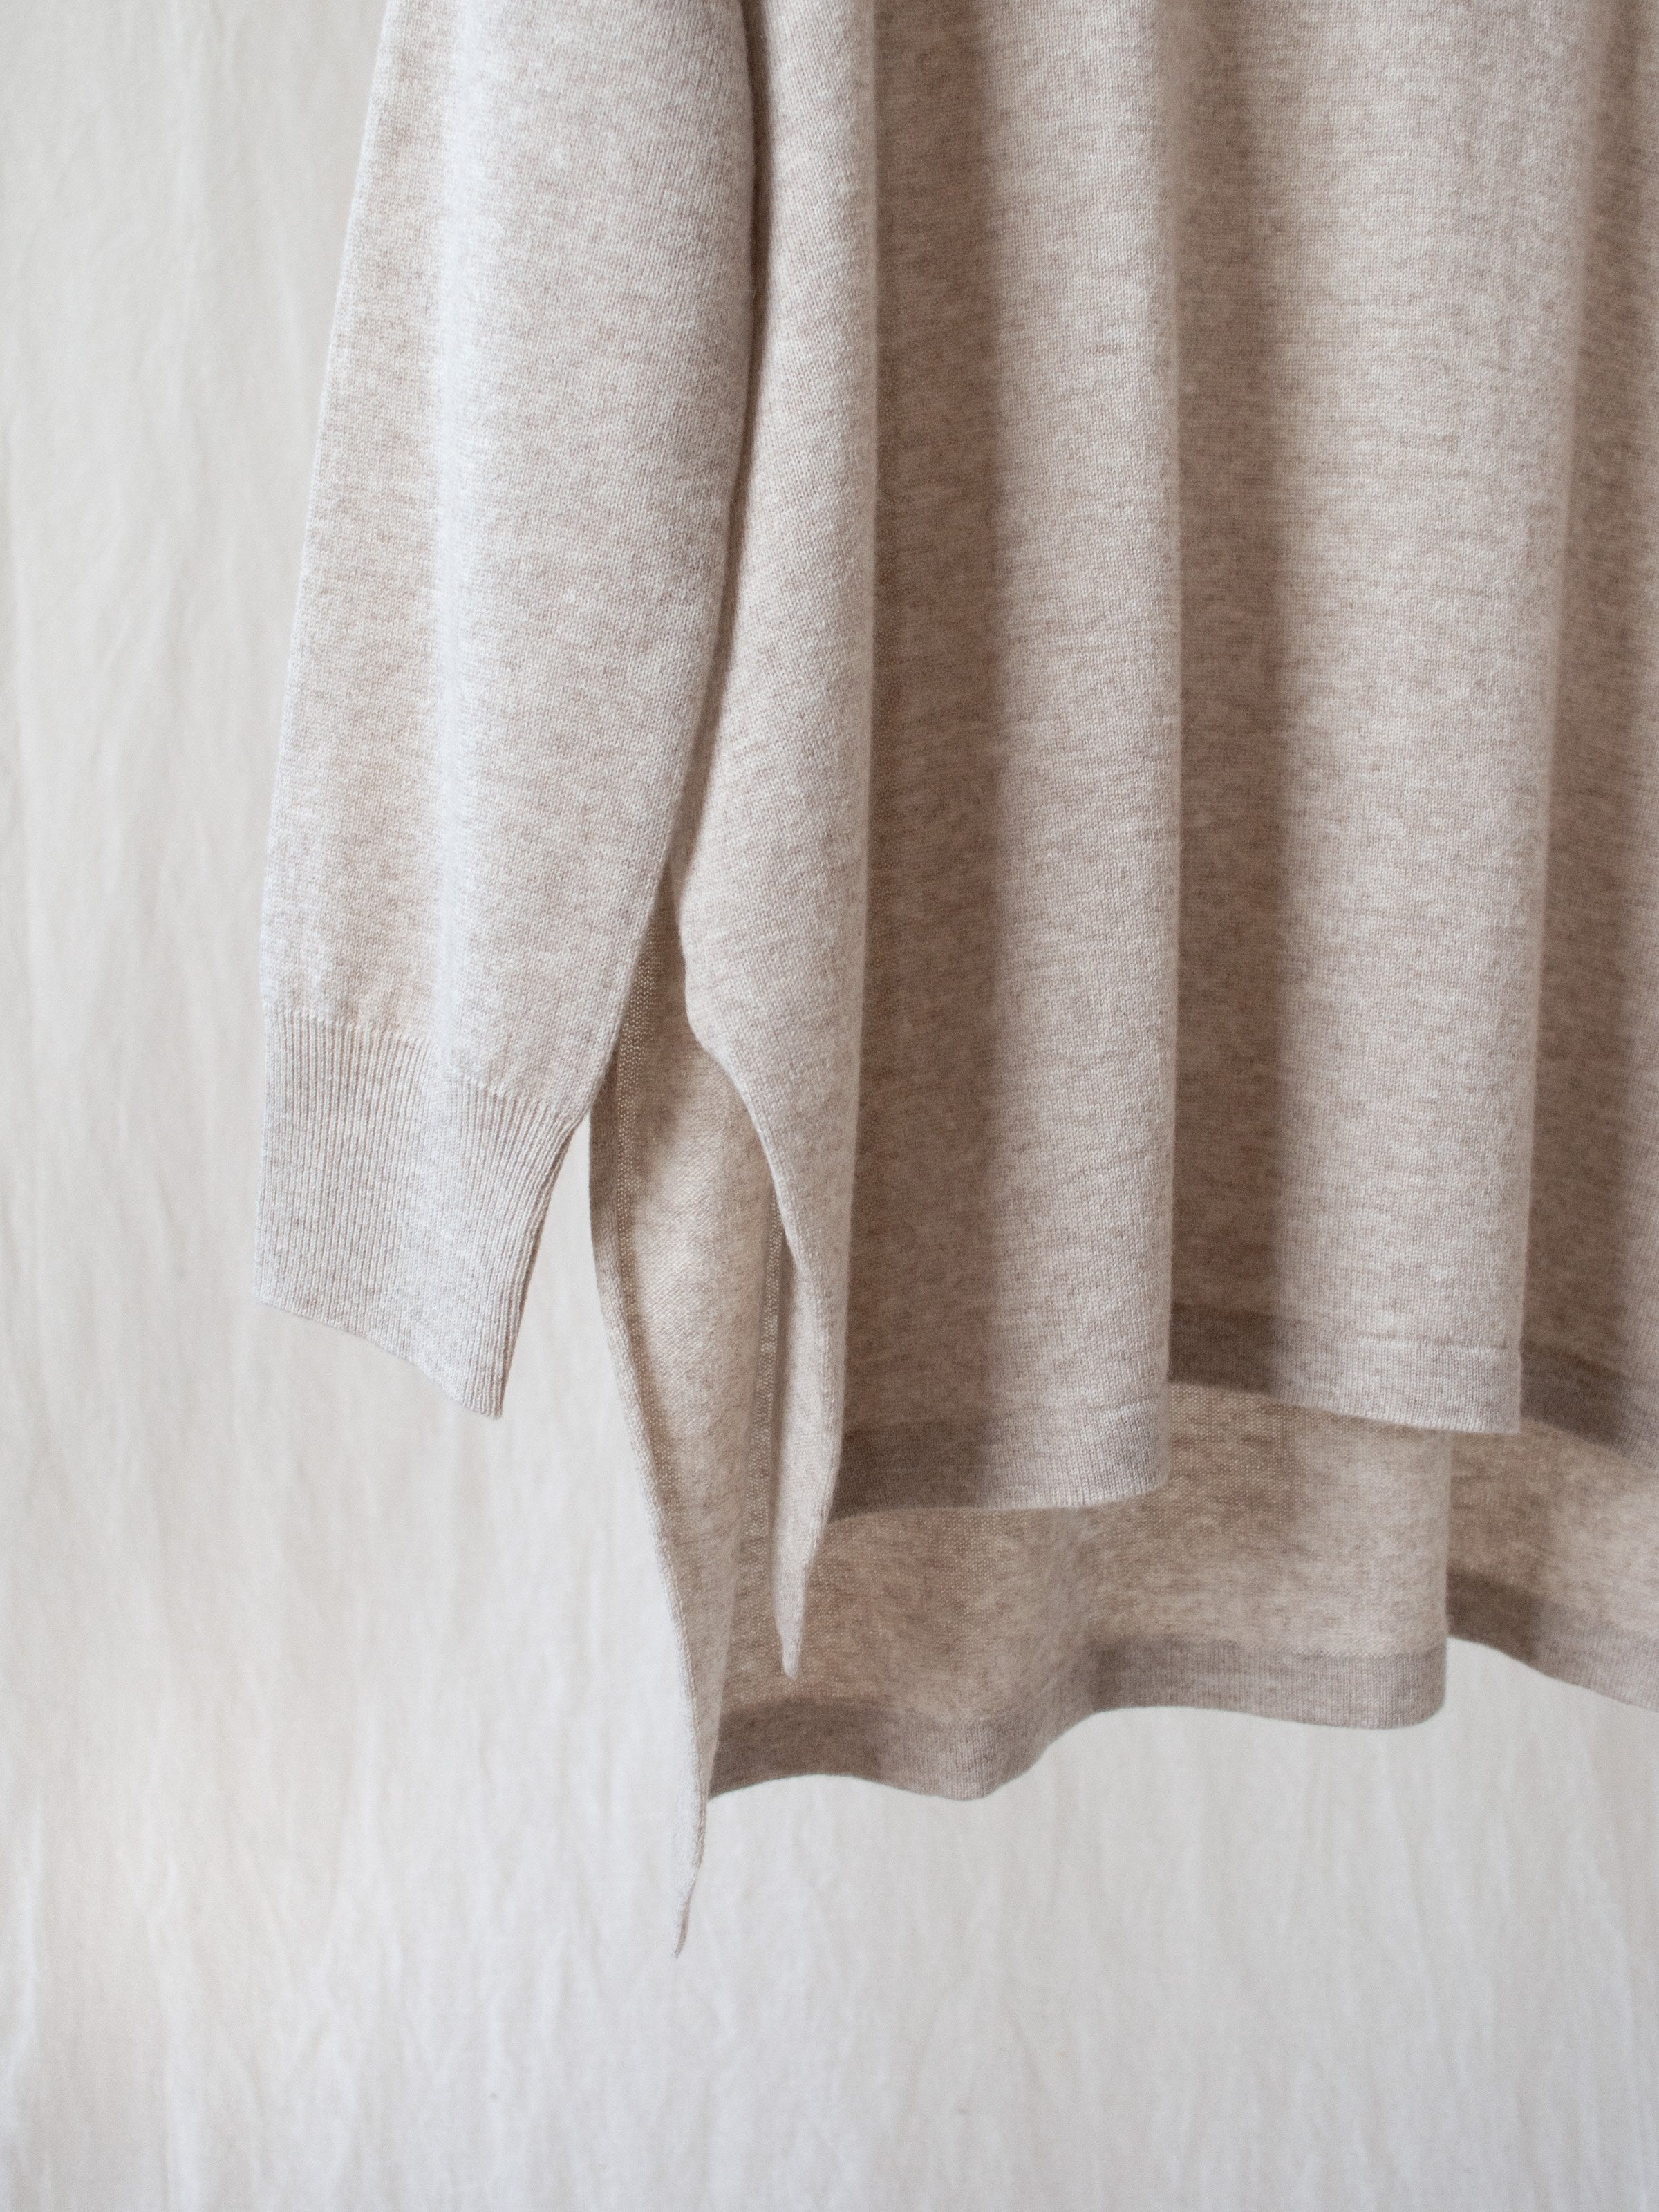 Namu Shop - Veritecoeur Relaxed Cashmere Turtleneck Sweater - Beige